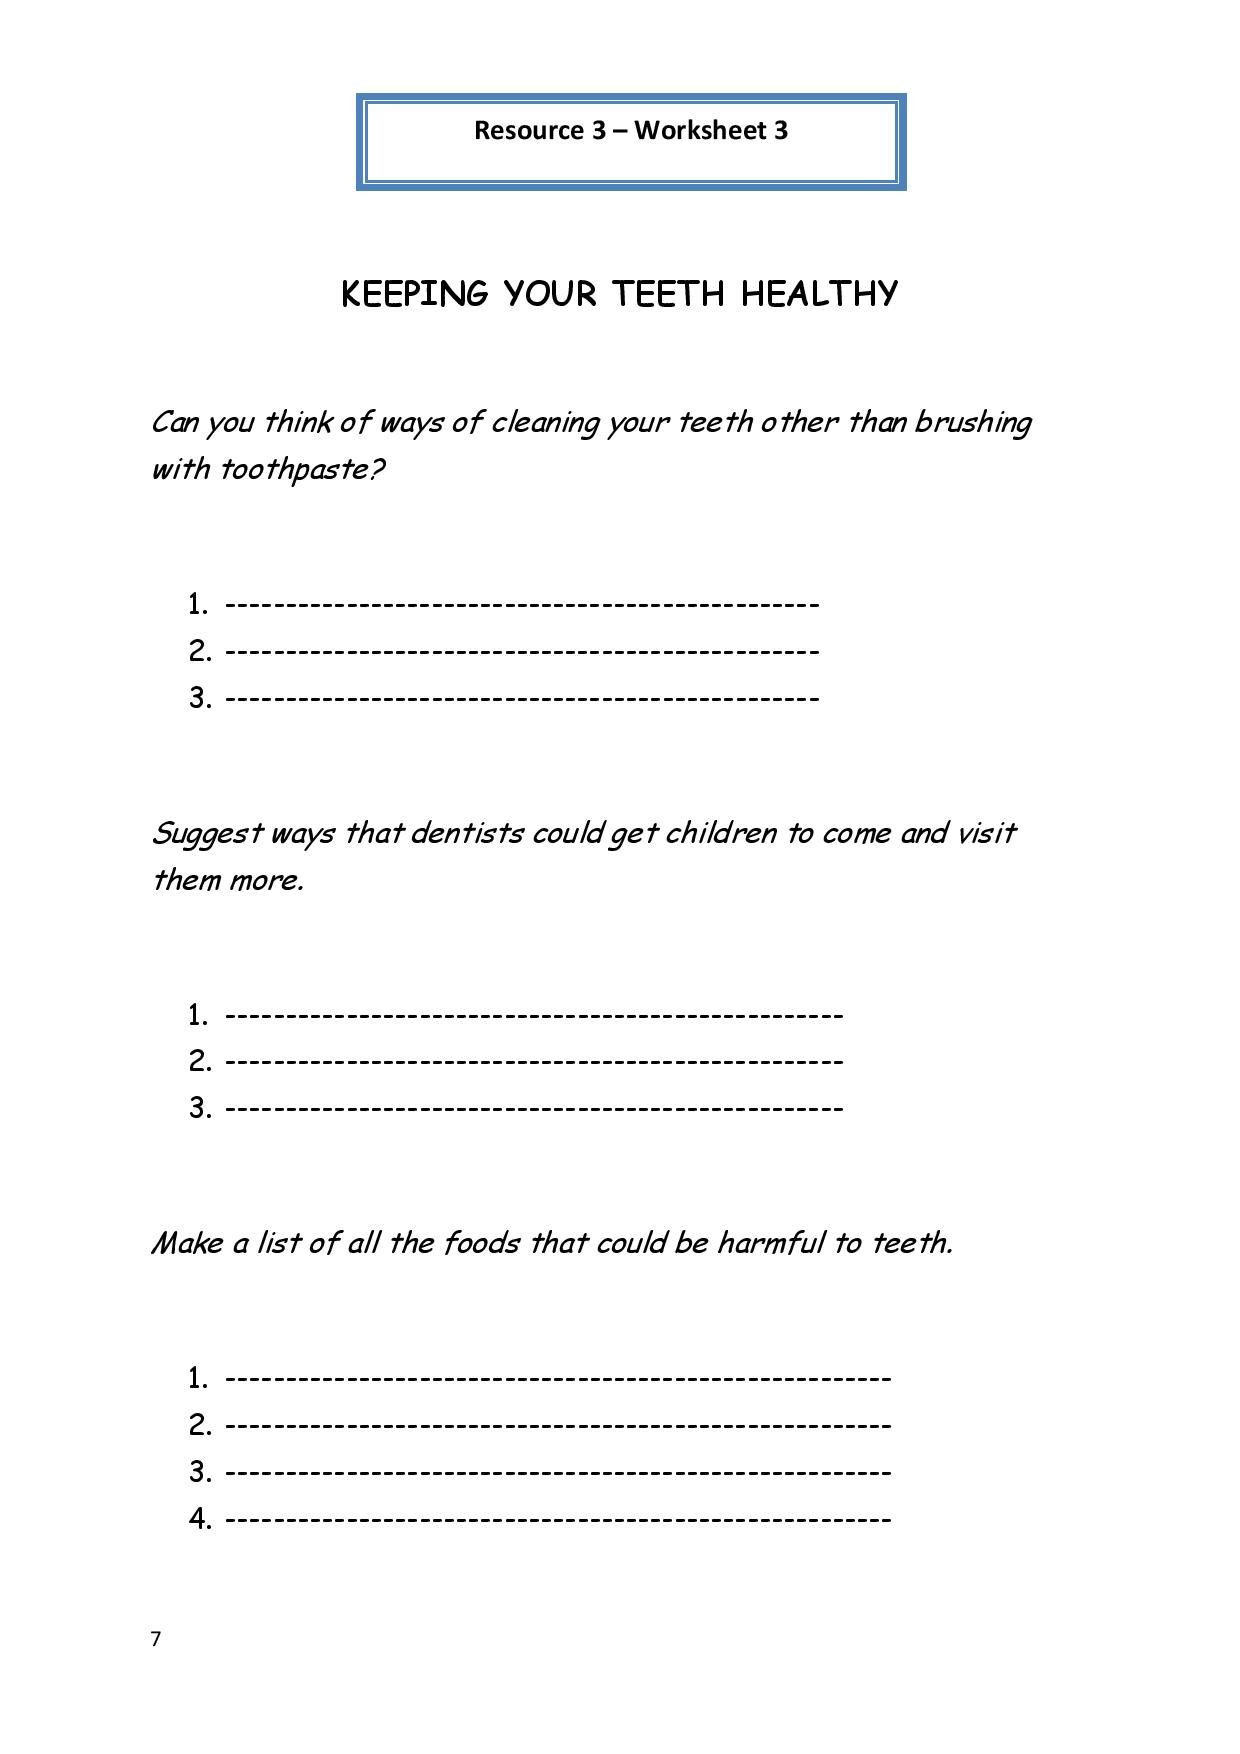 Middle School Health Worksheets Pdf Personal Hygiene Worksheet 3 Keeping Your Teeth Healthy